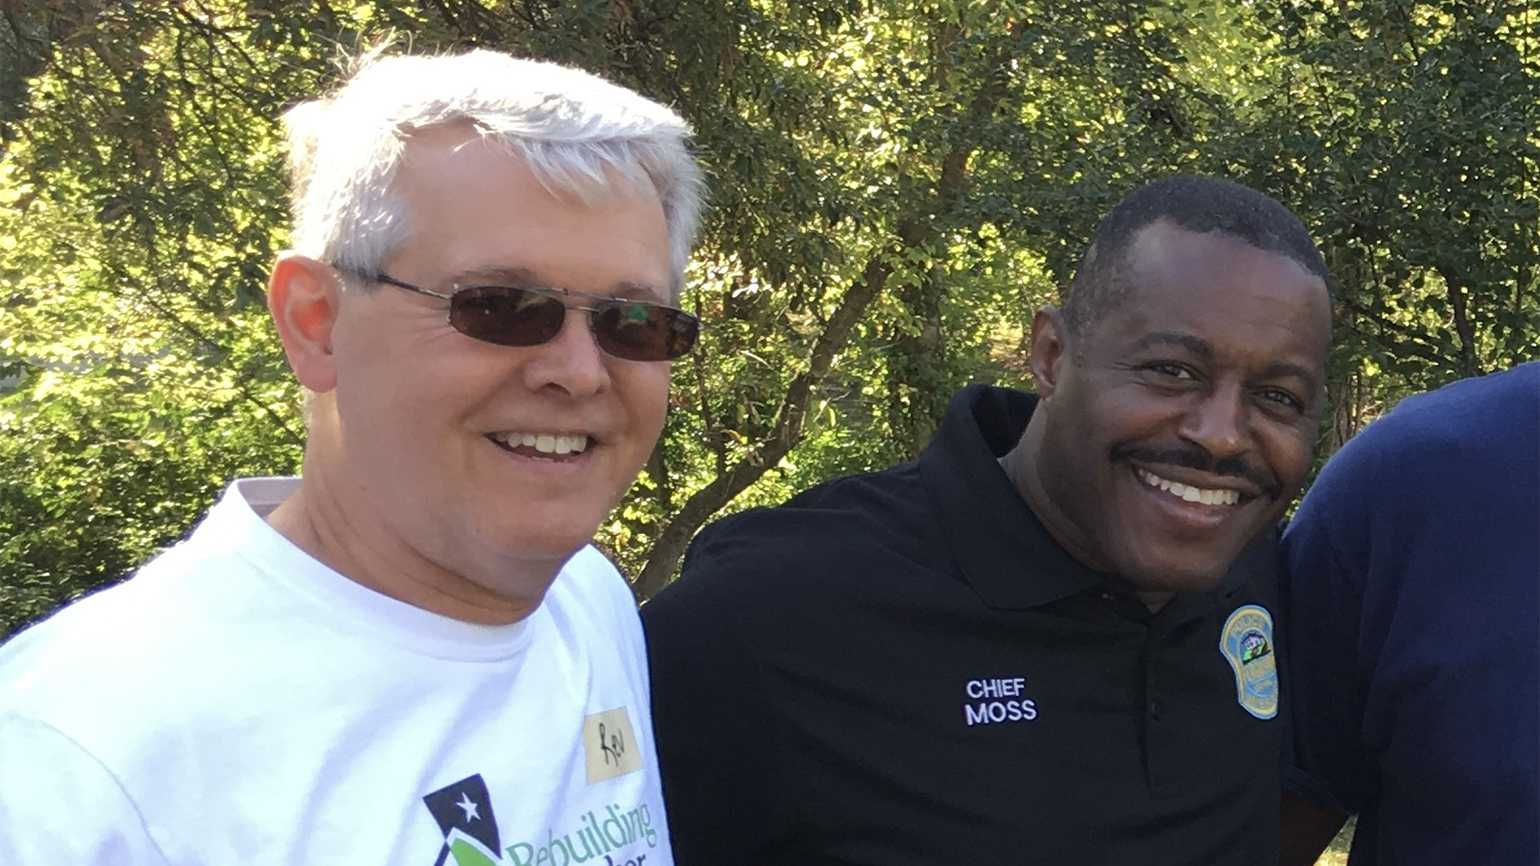 Police chaplain John Revell of Building Community and Chief Moss